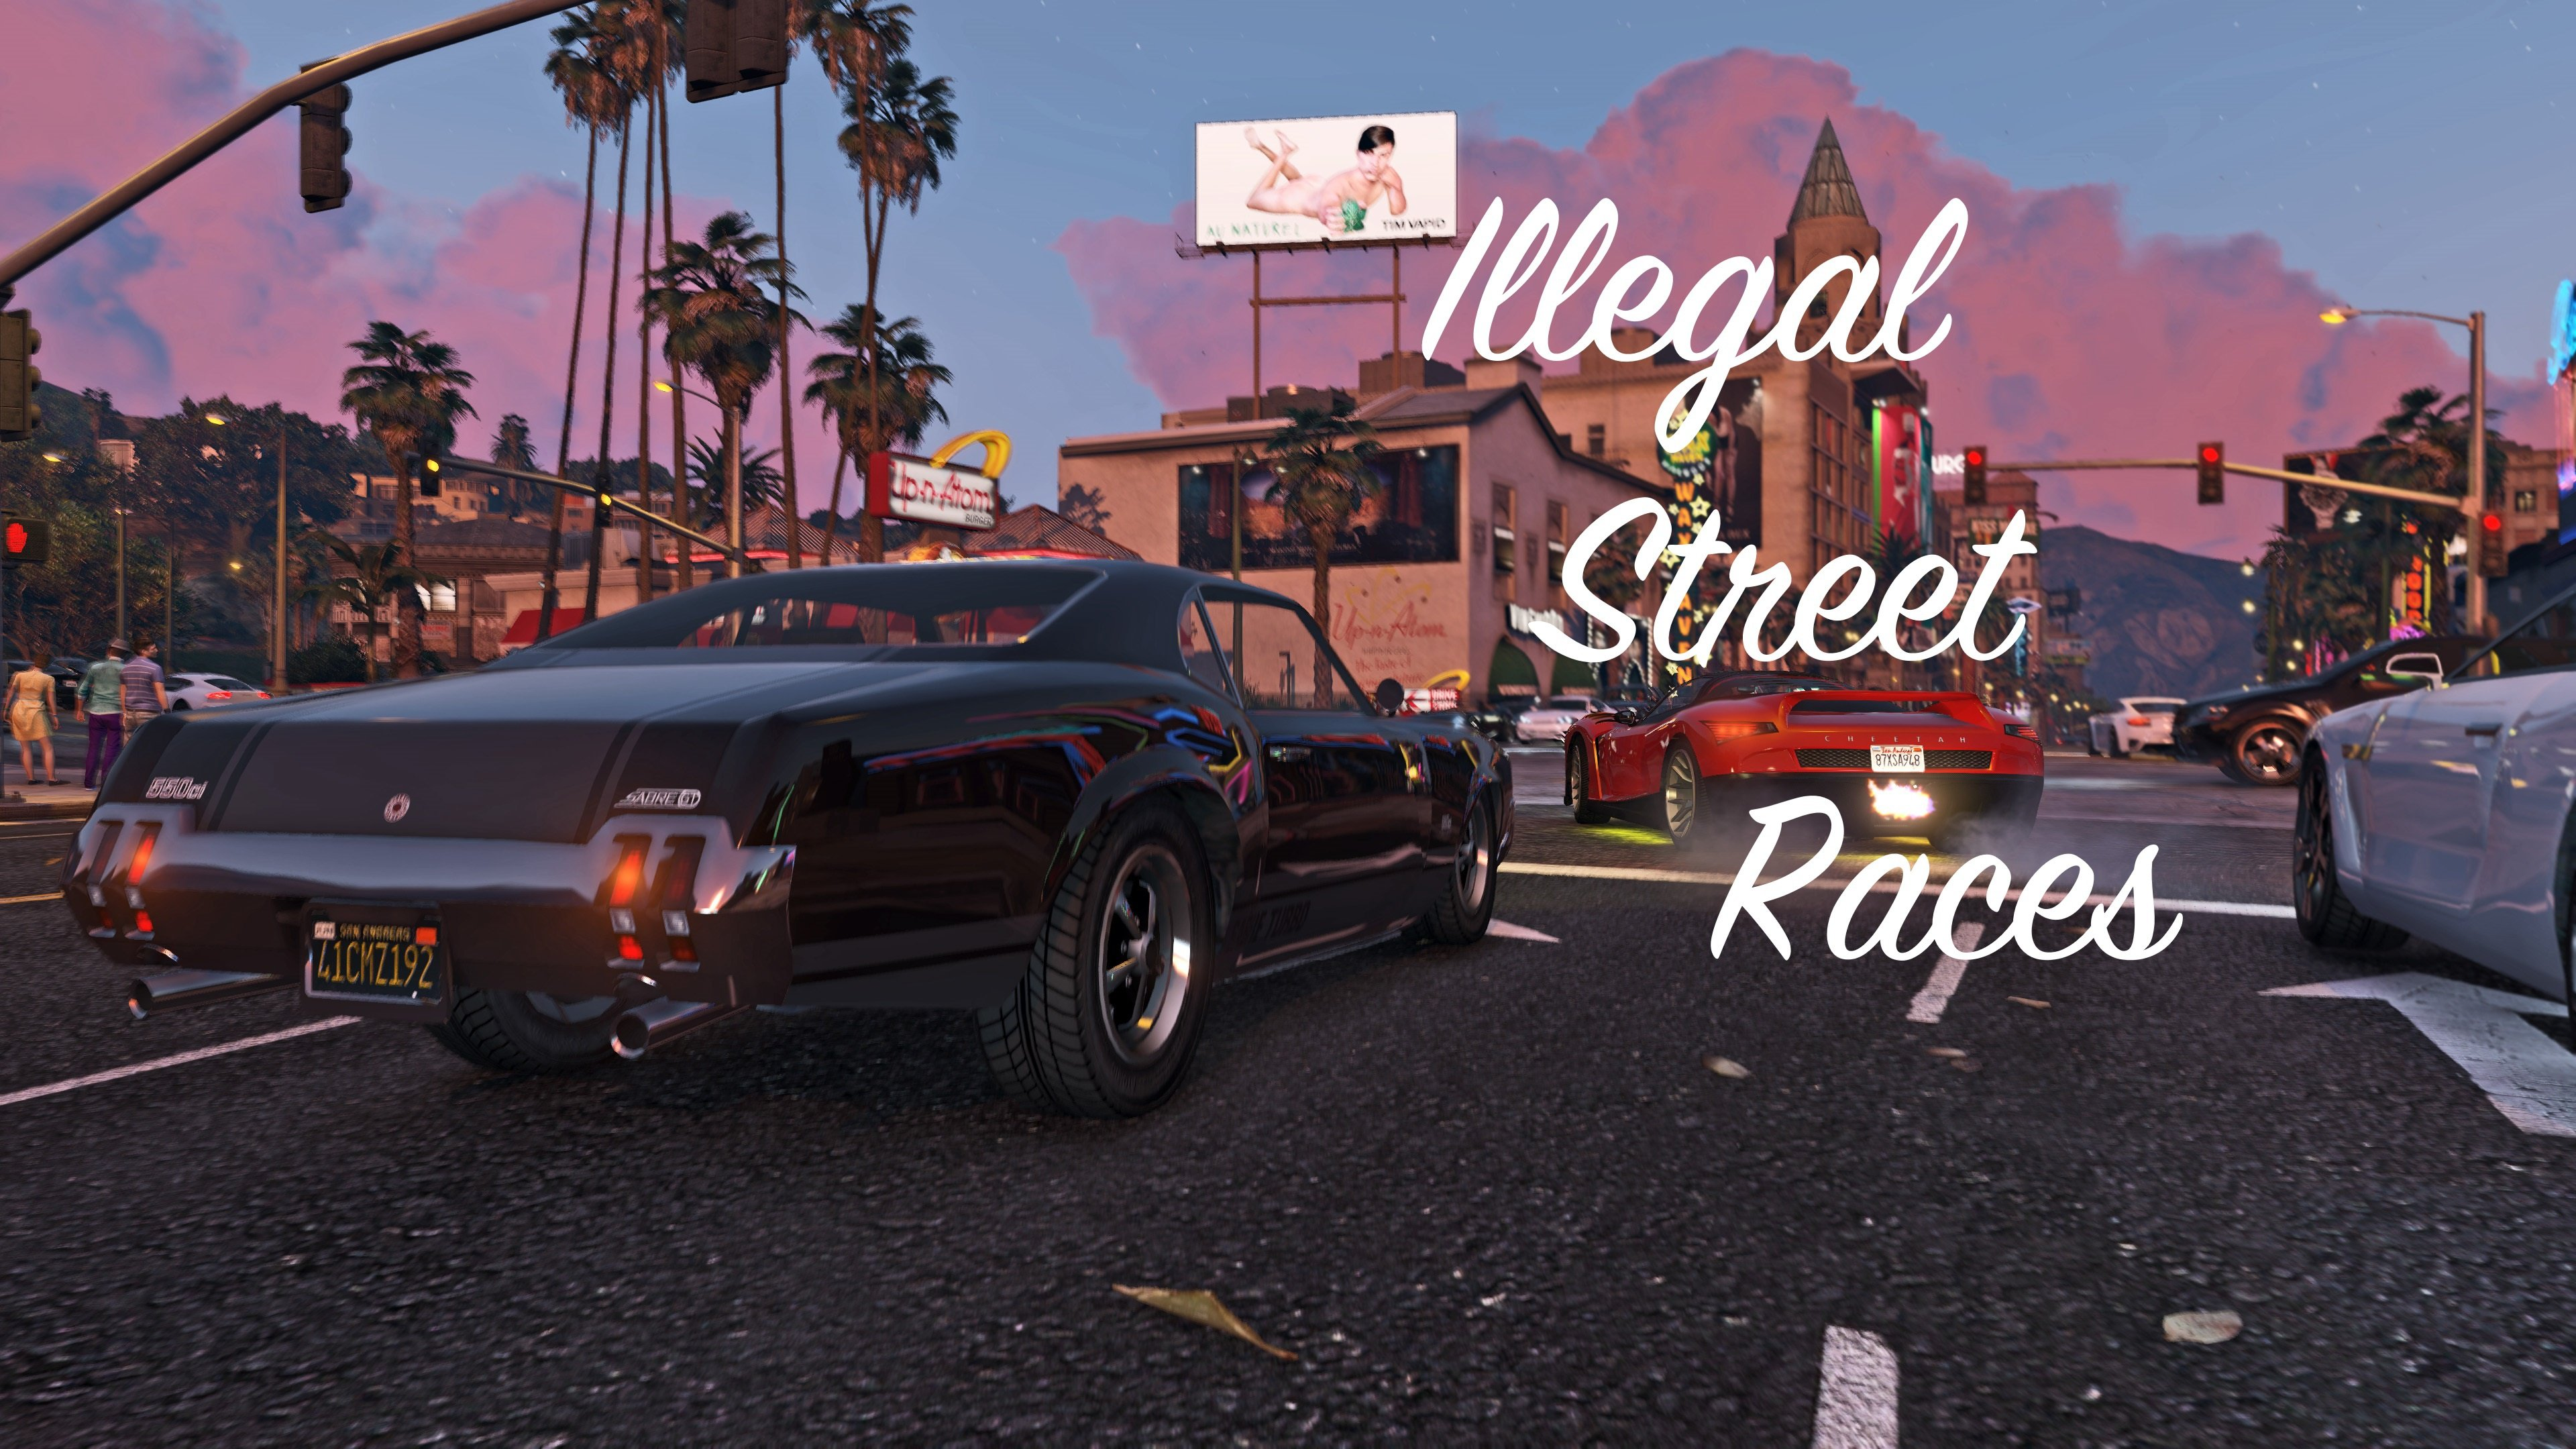 Illegal Street Races Mod v1.1 for GTA 5